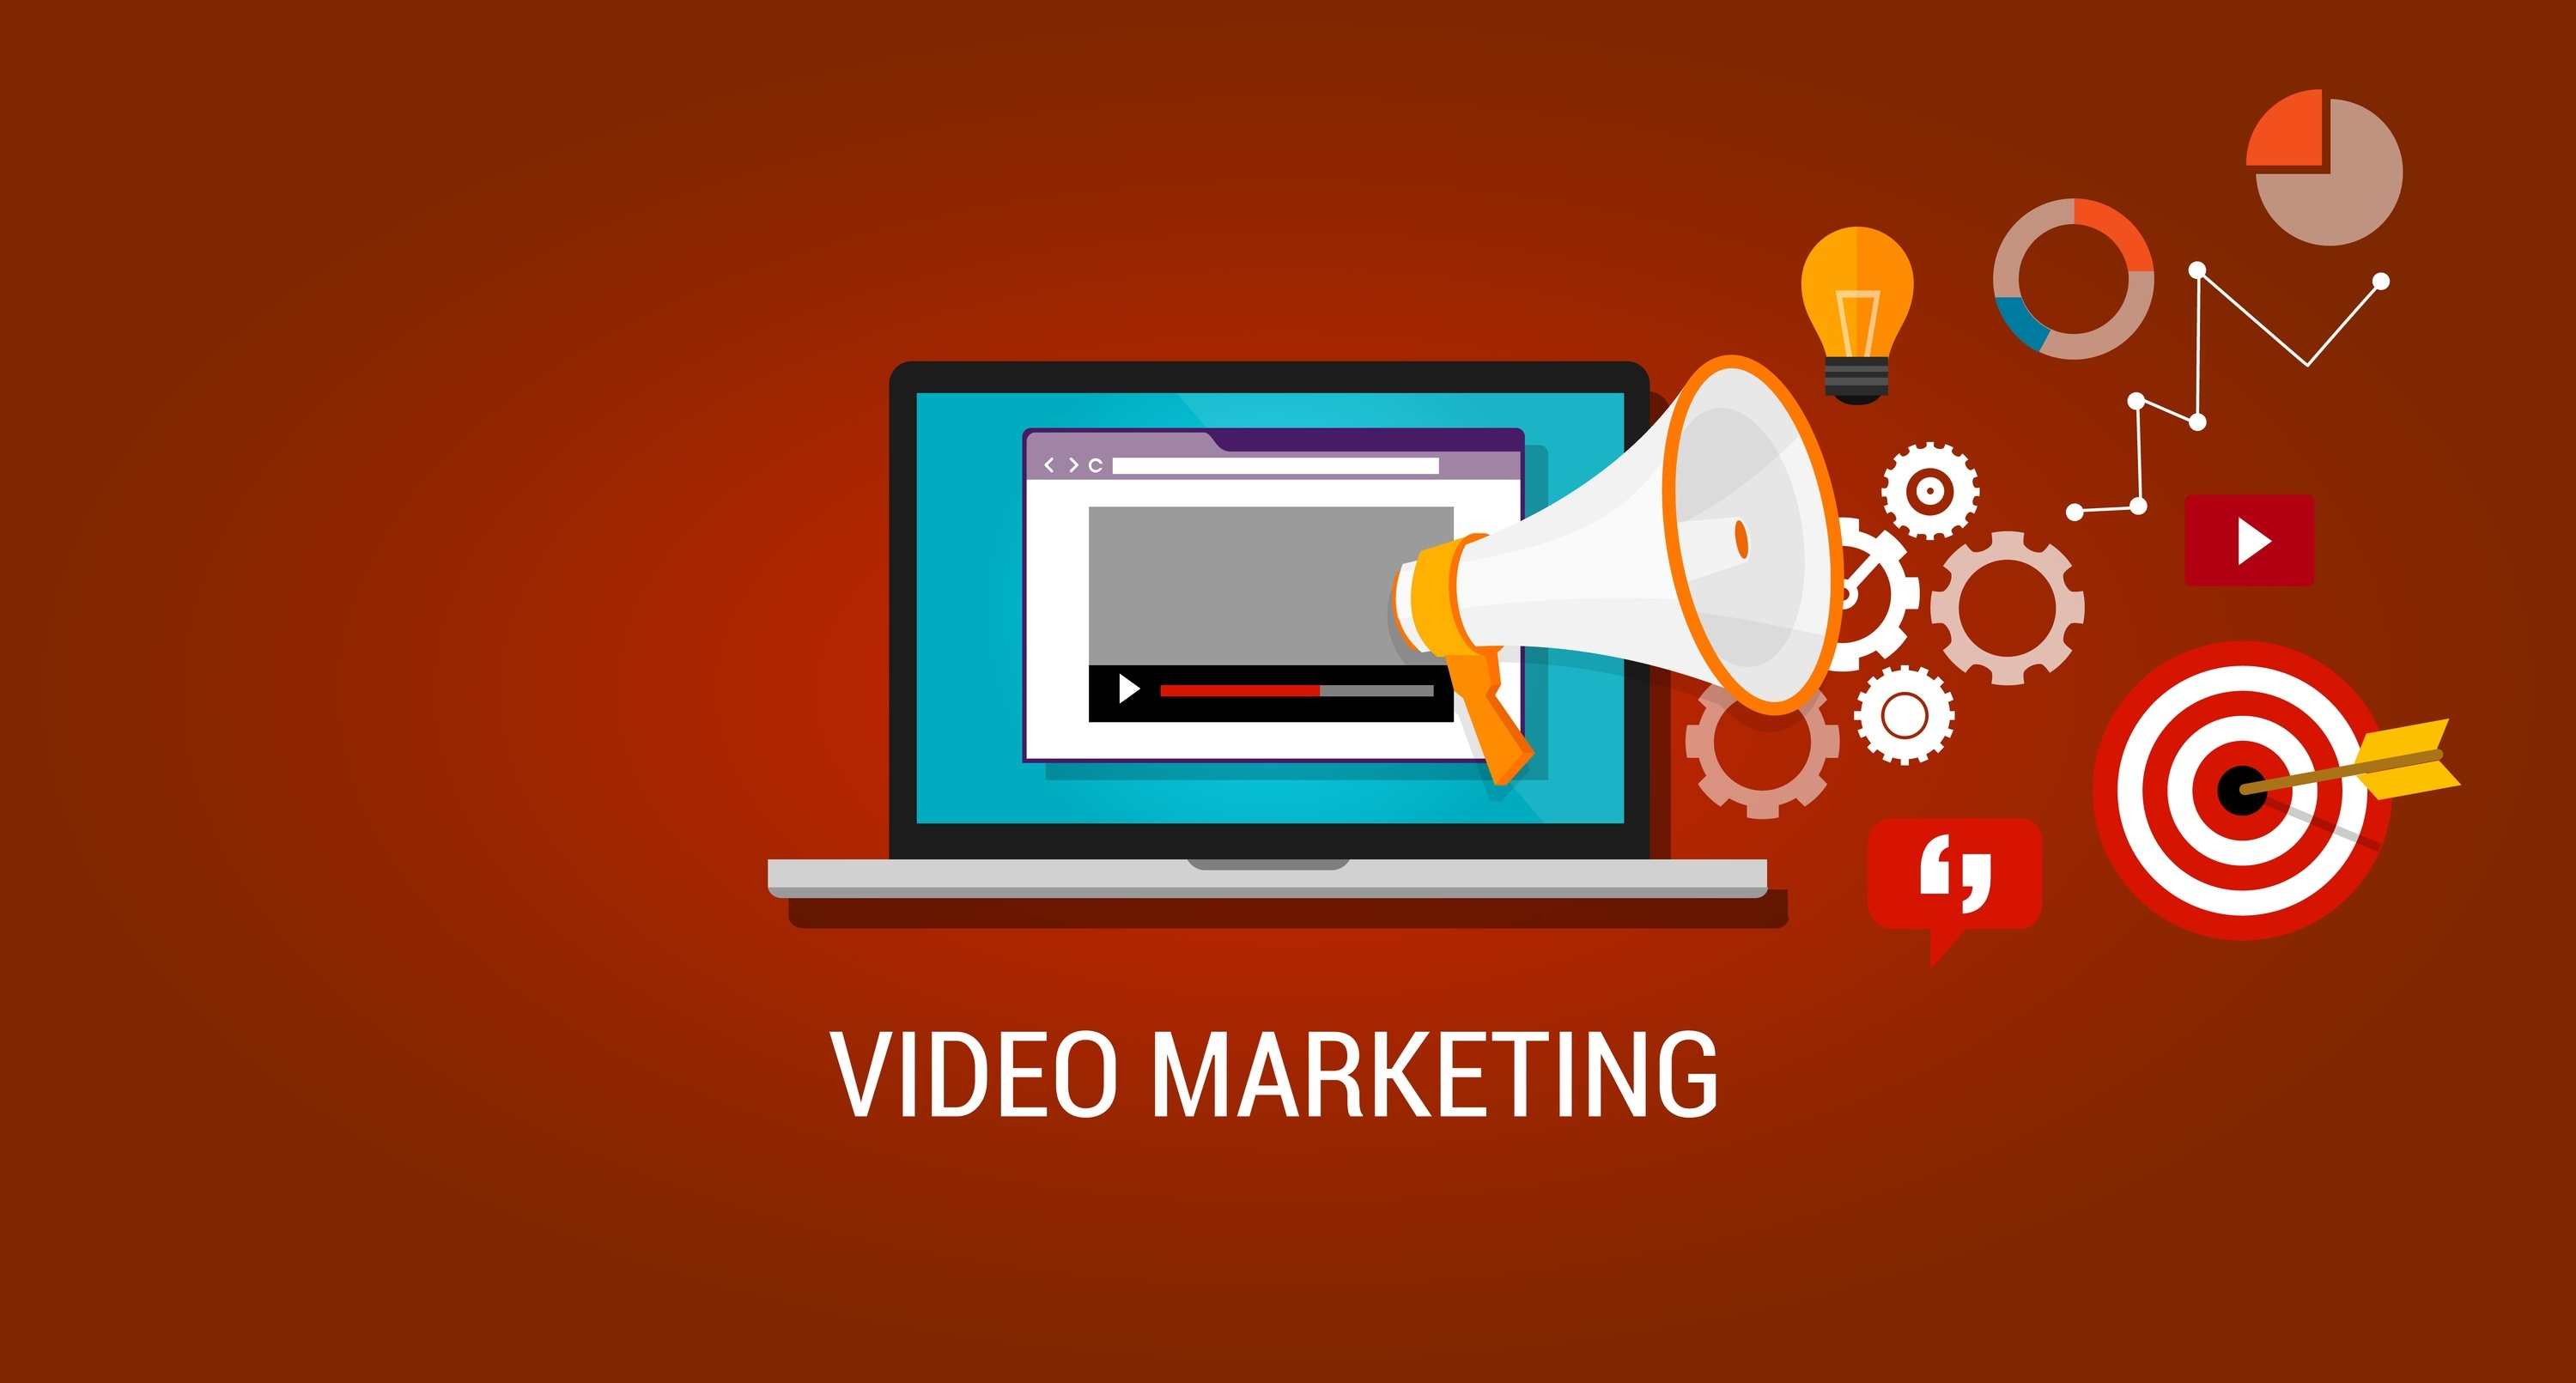 PART 2: 30 Ways Video Marketing can make your marketing budget go further